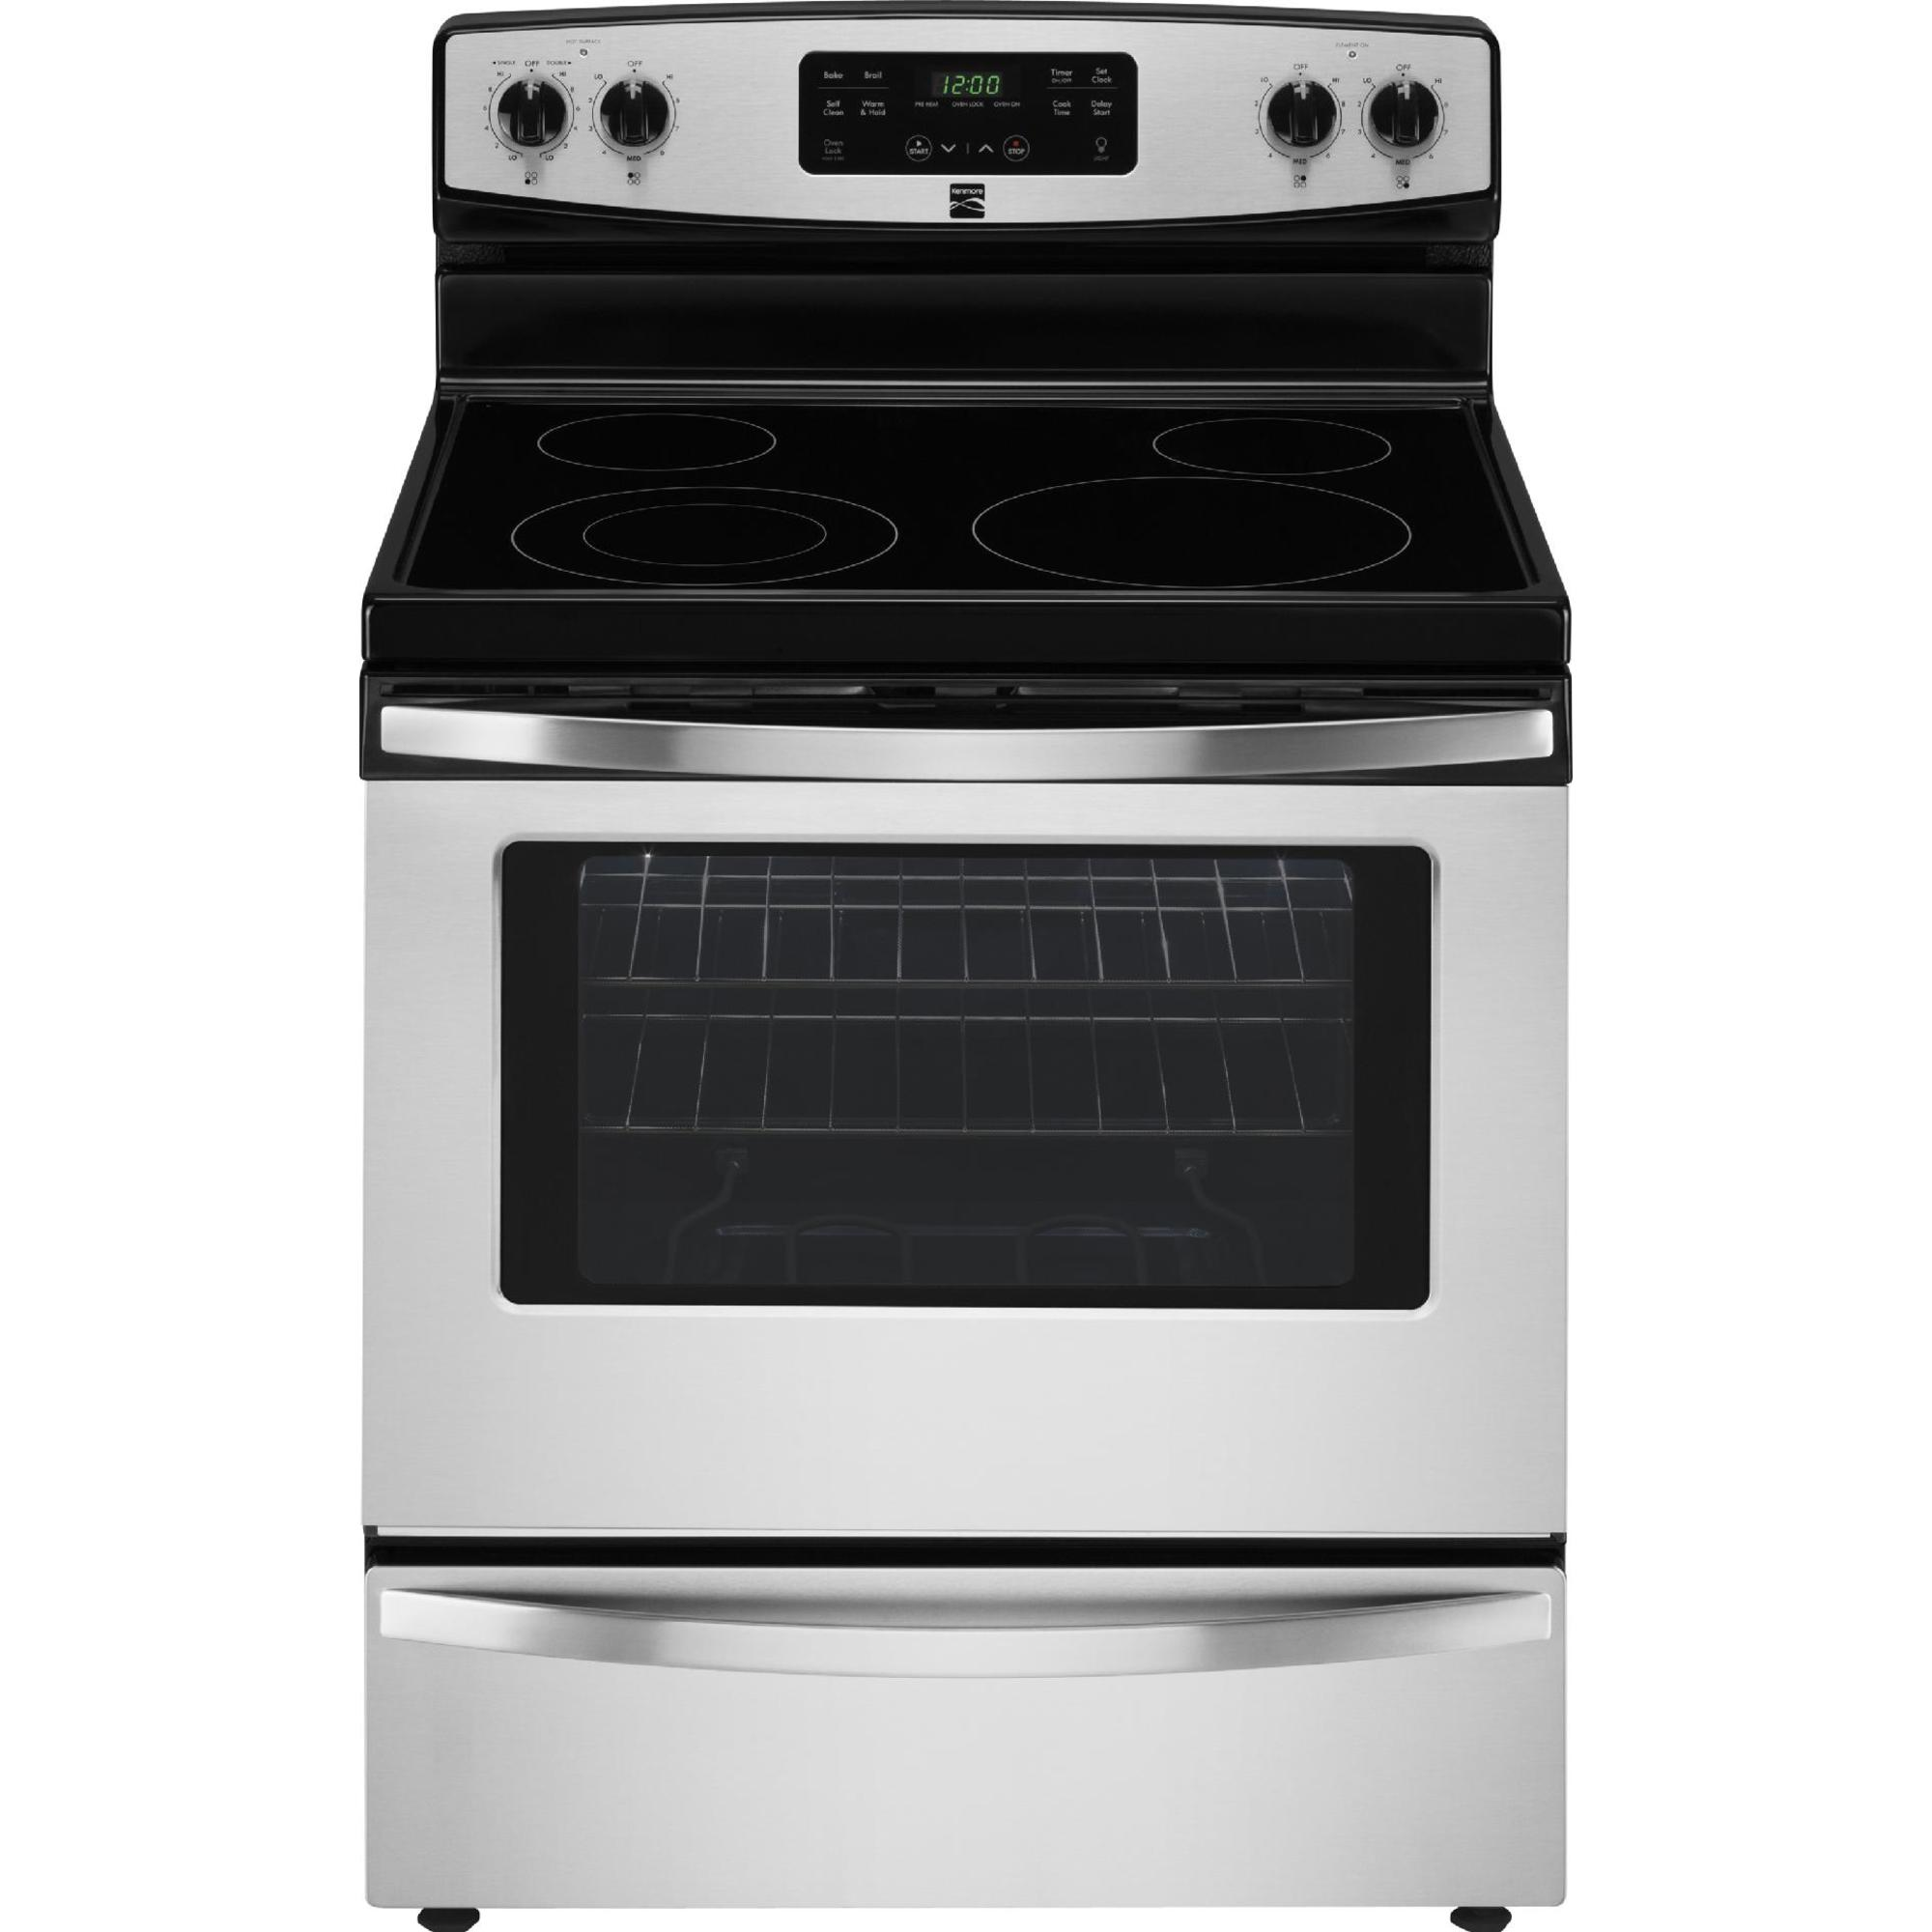 Kenmore 94173 5.3 cu. ft. Electric Freestanding Range w/ Self-Clean - Stainless Steel